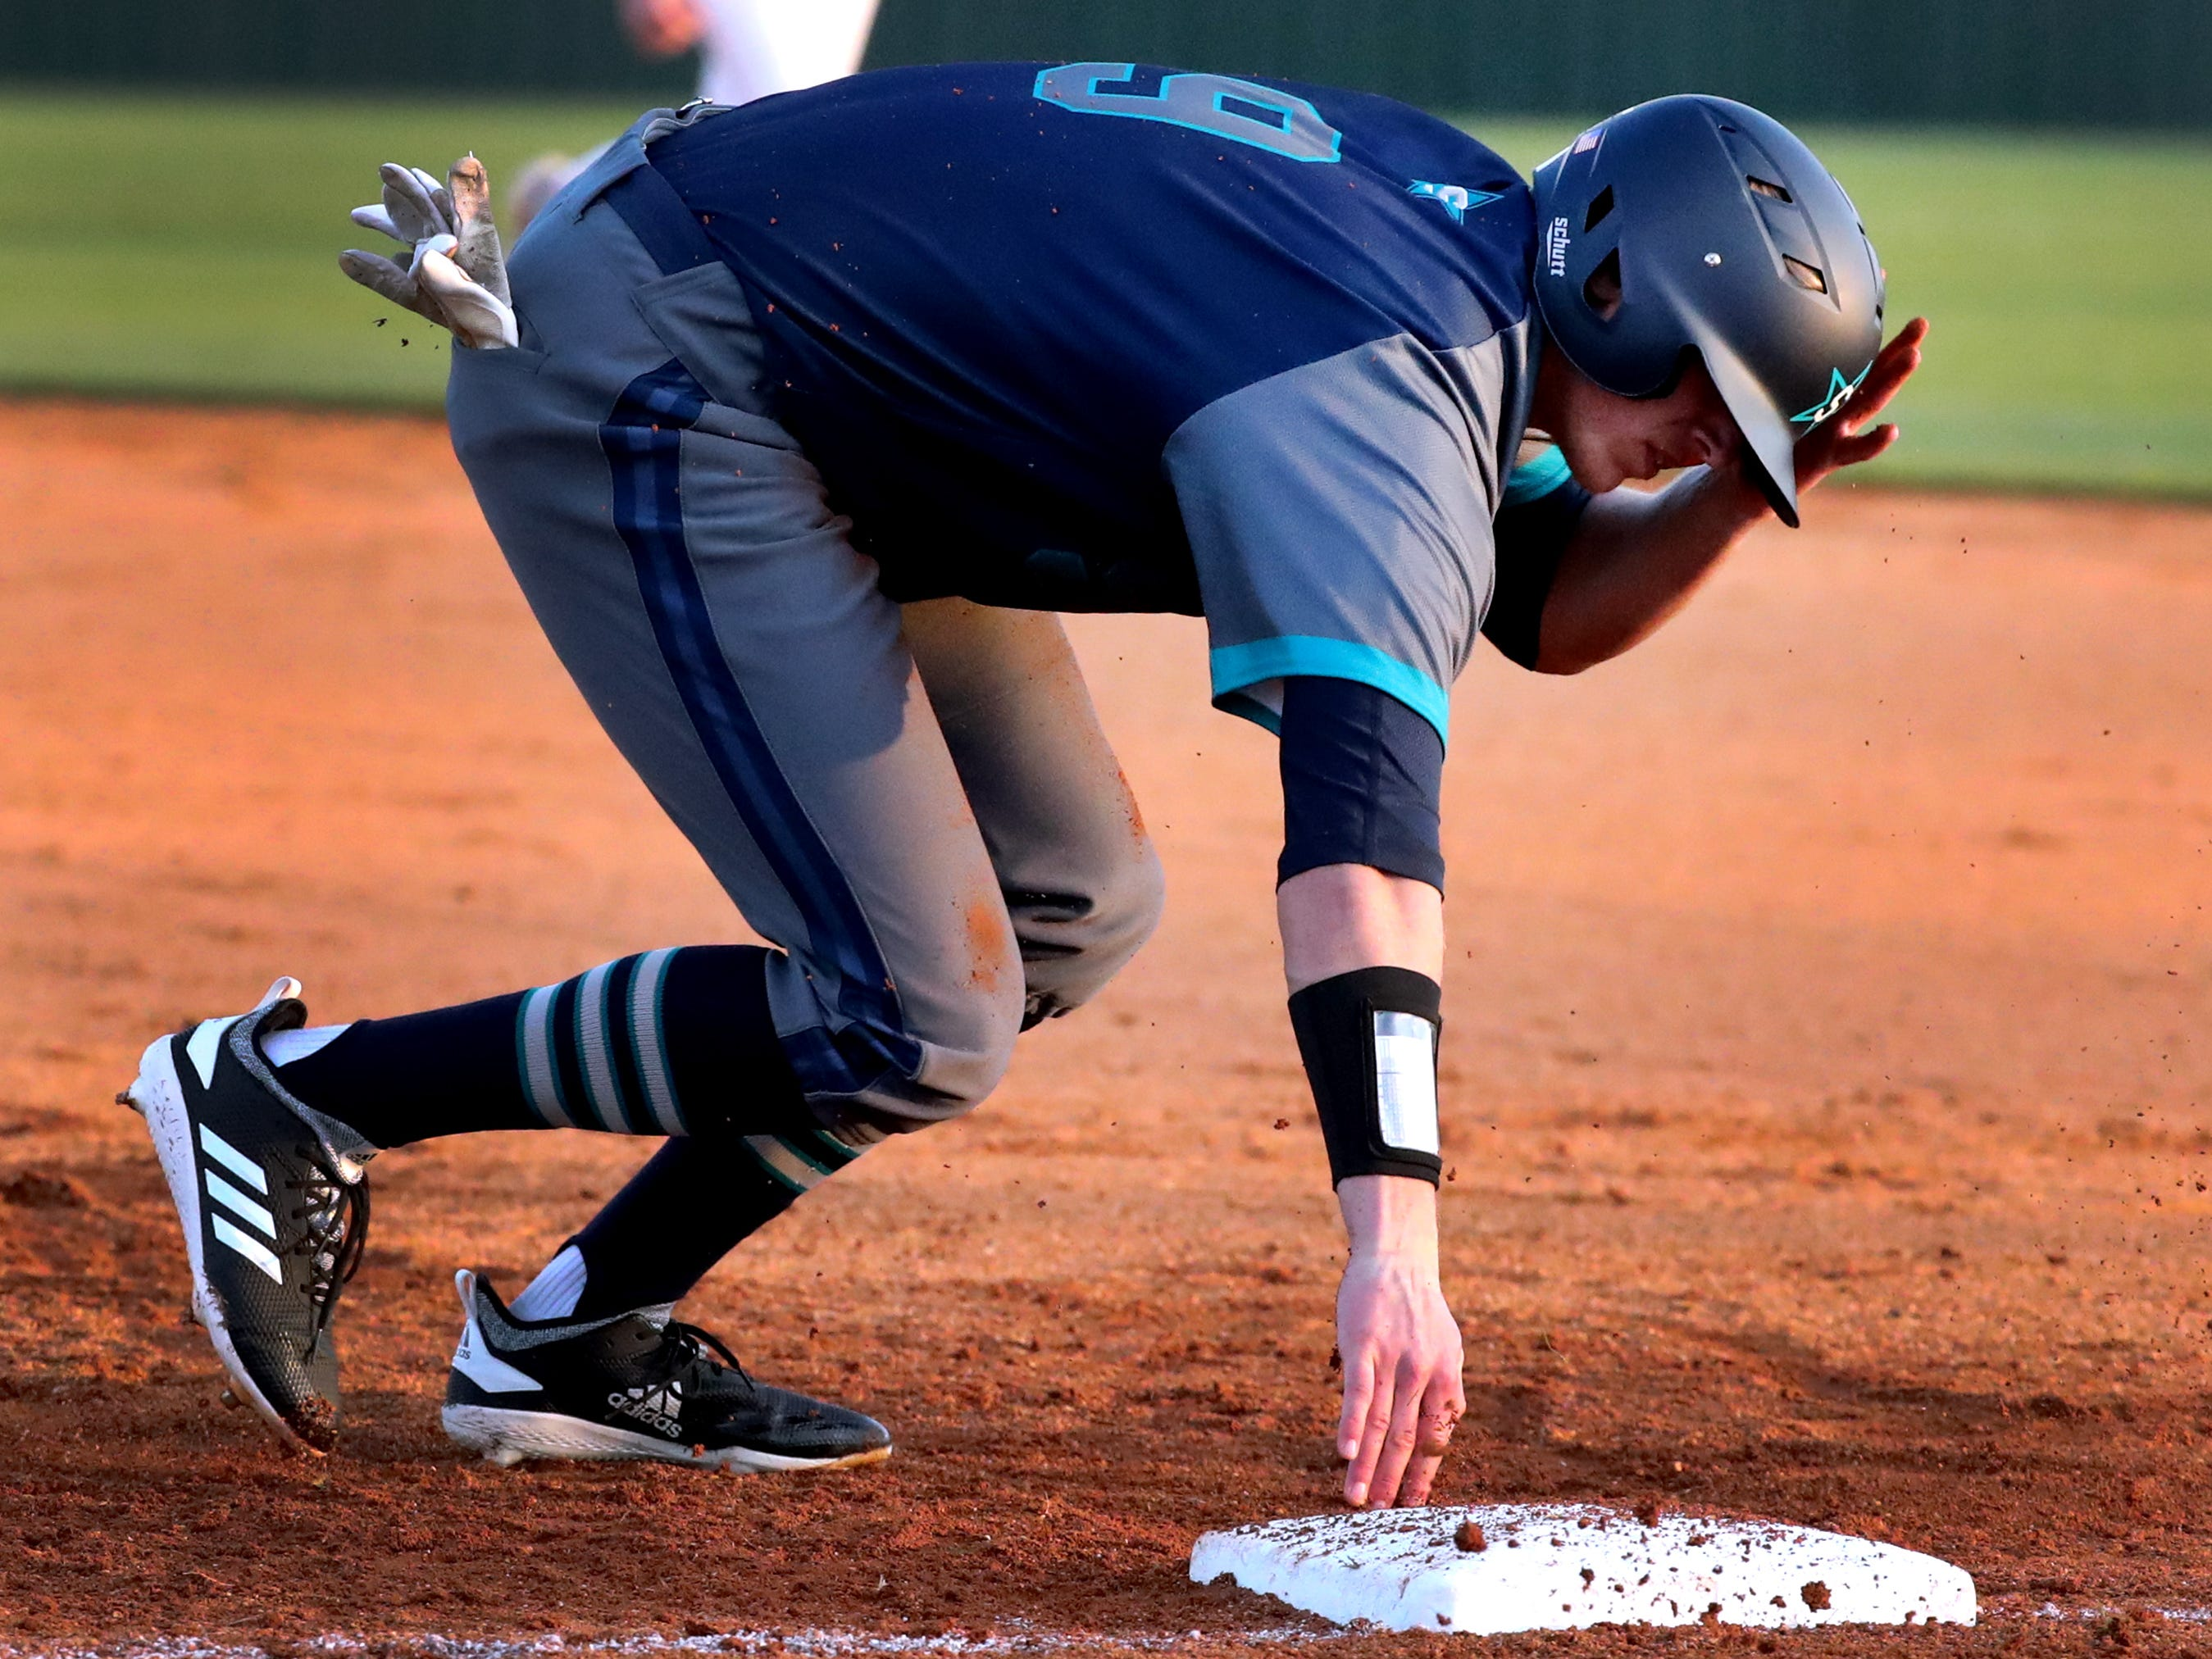 Siegel's Evan Milligan (9) gets up from first base to run toward second base after the ball was overthrown during the game against Blackman, on Monday, March 11, 2019.